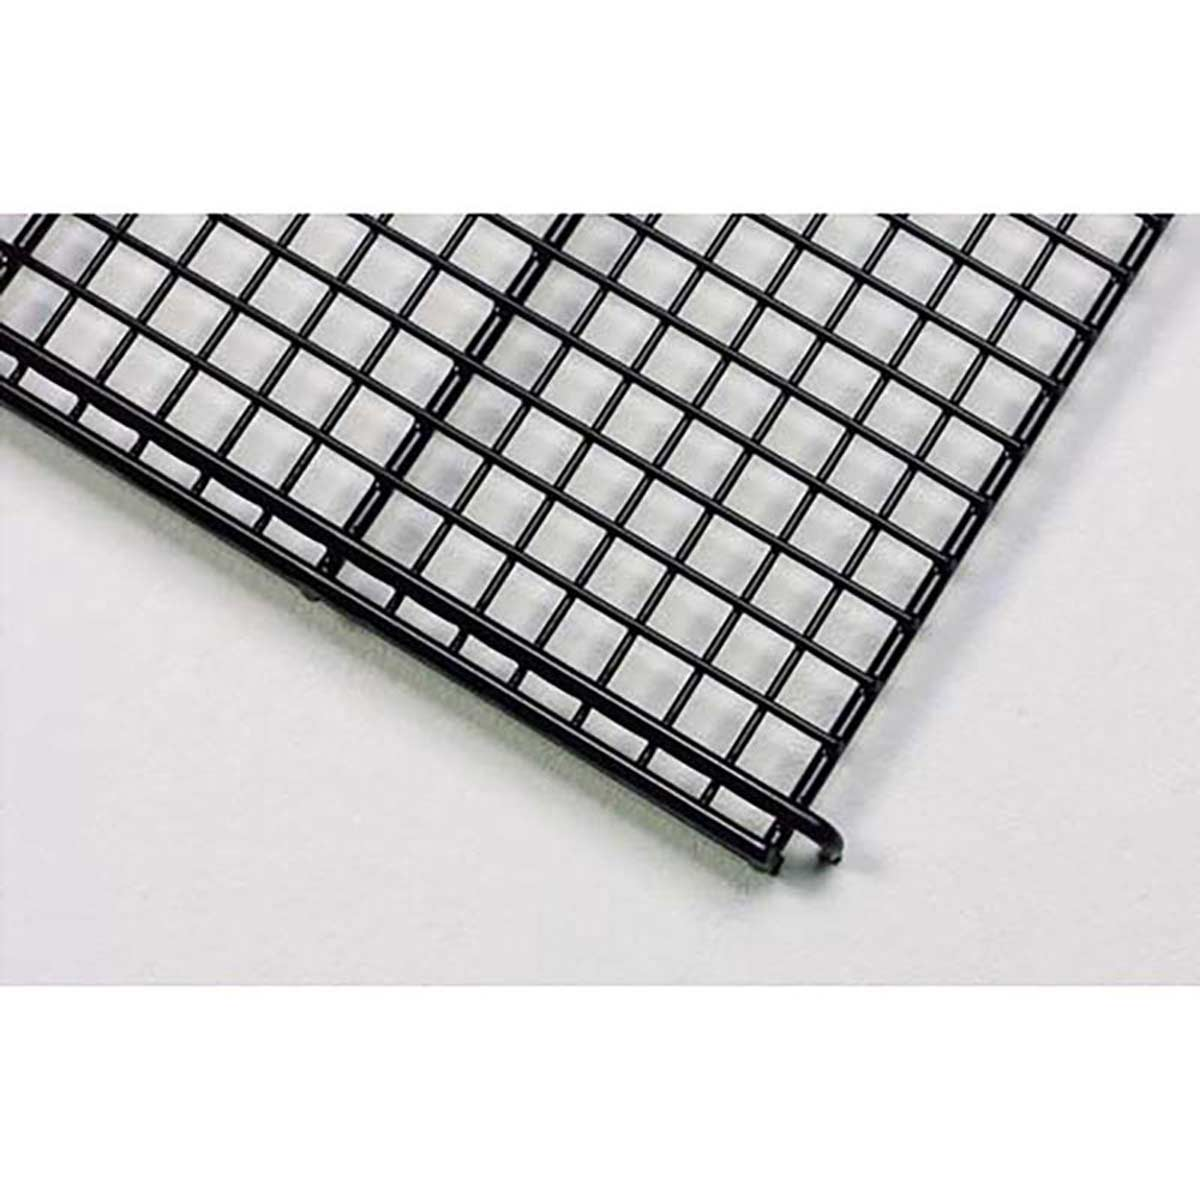 Midwest Floor Grid M22410 Replacement Grid - 1 inch by 1 inch